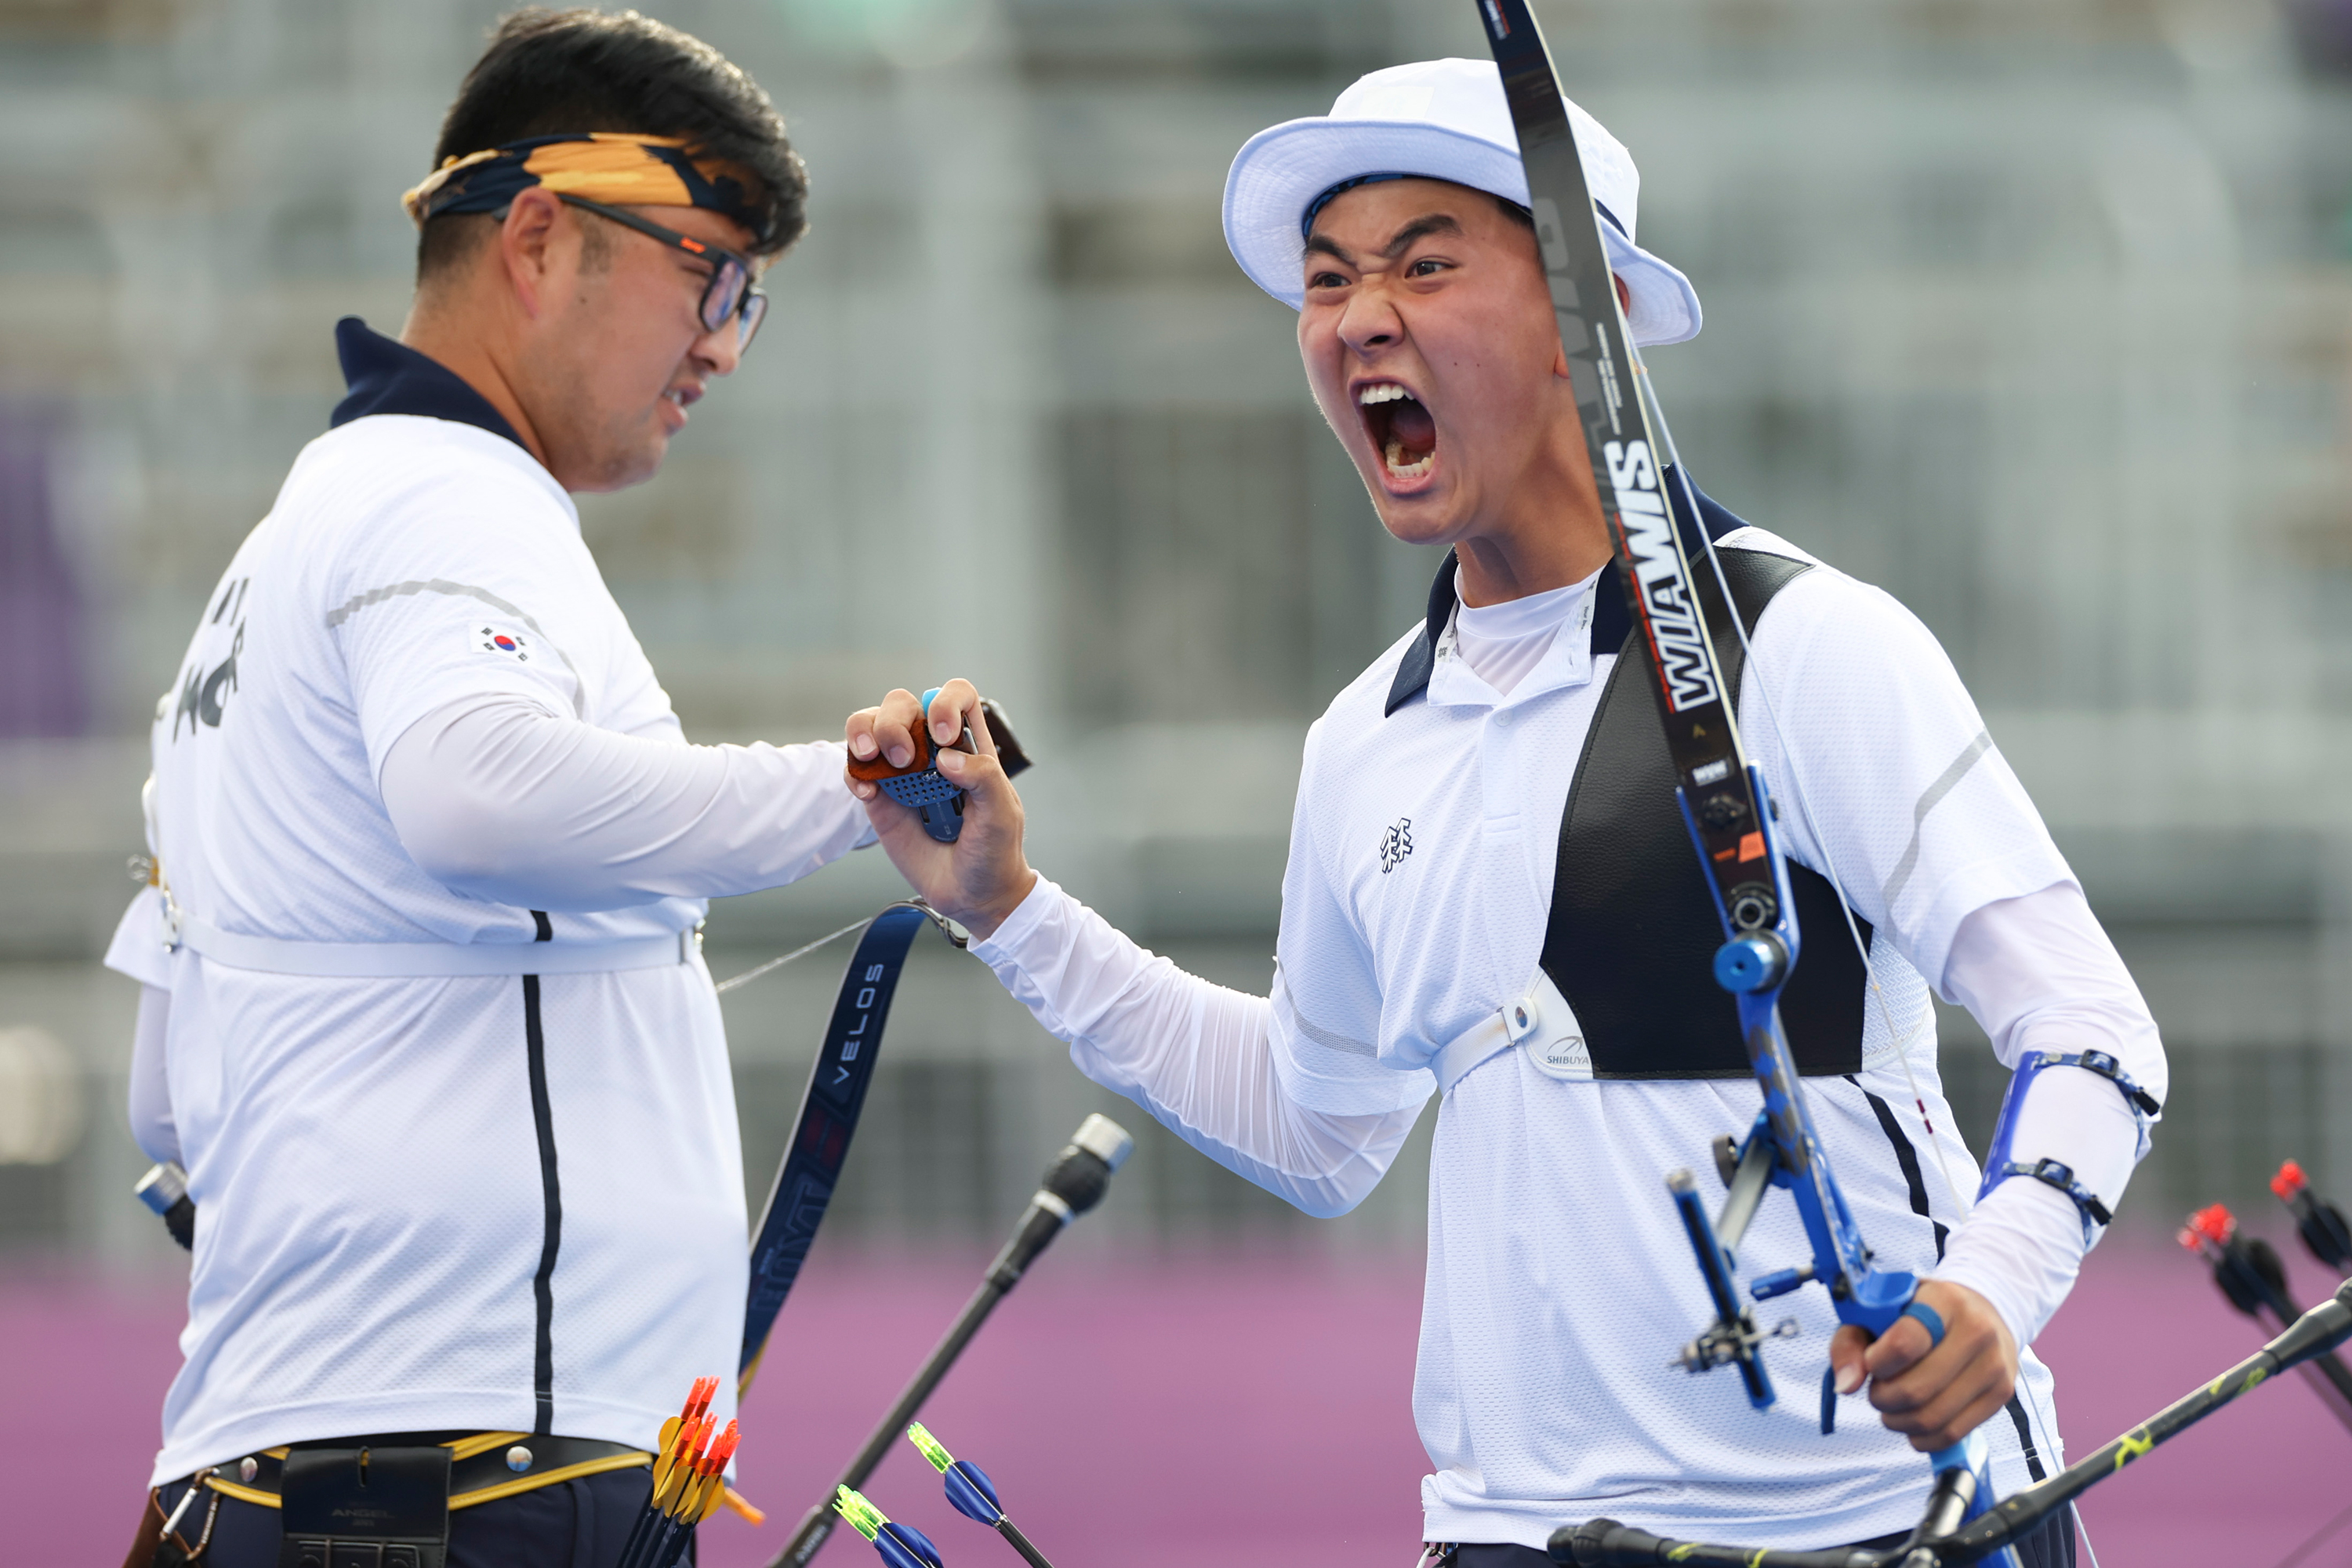 South Korea's Kim Je-deok celebrates winning the gold medal in the archery team competition on July 26.